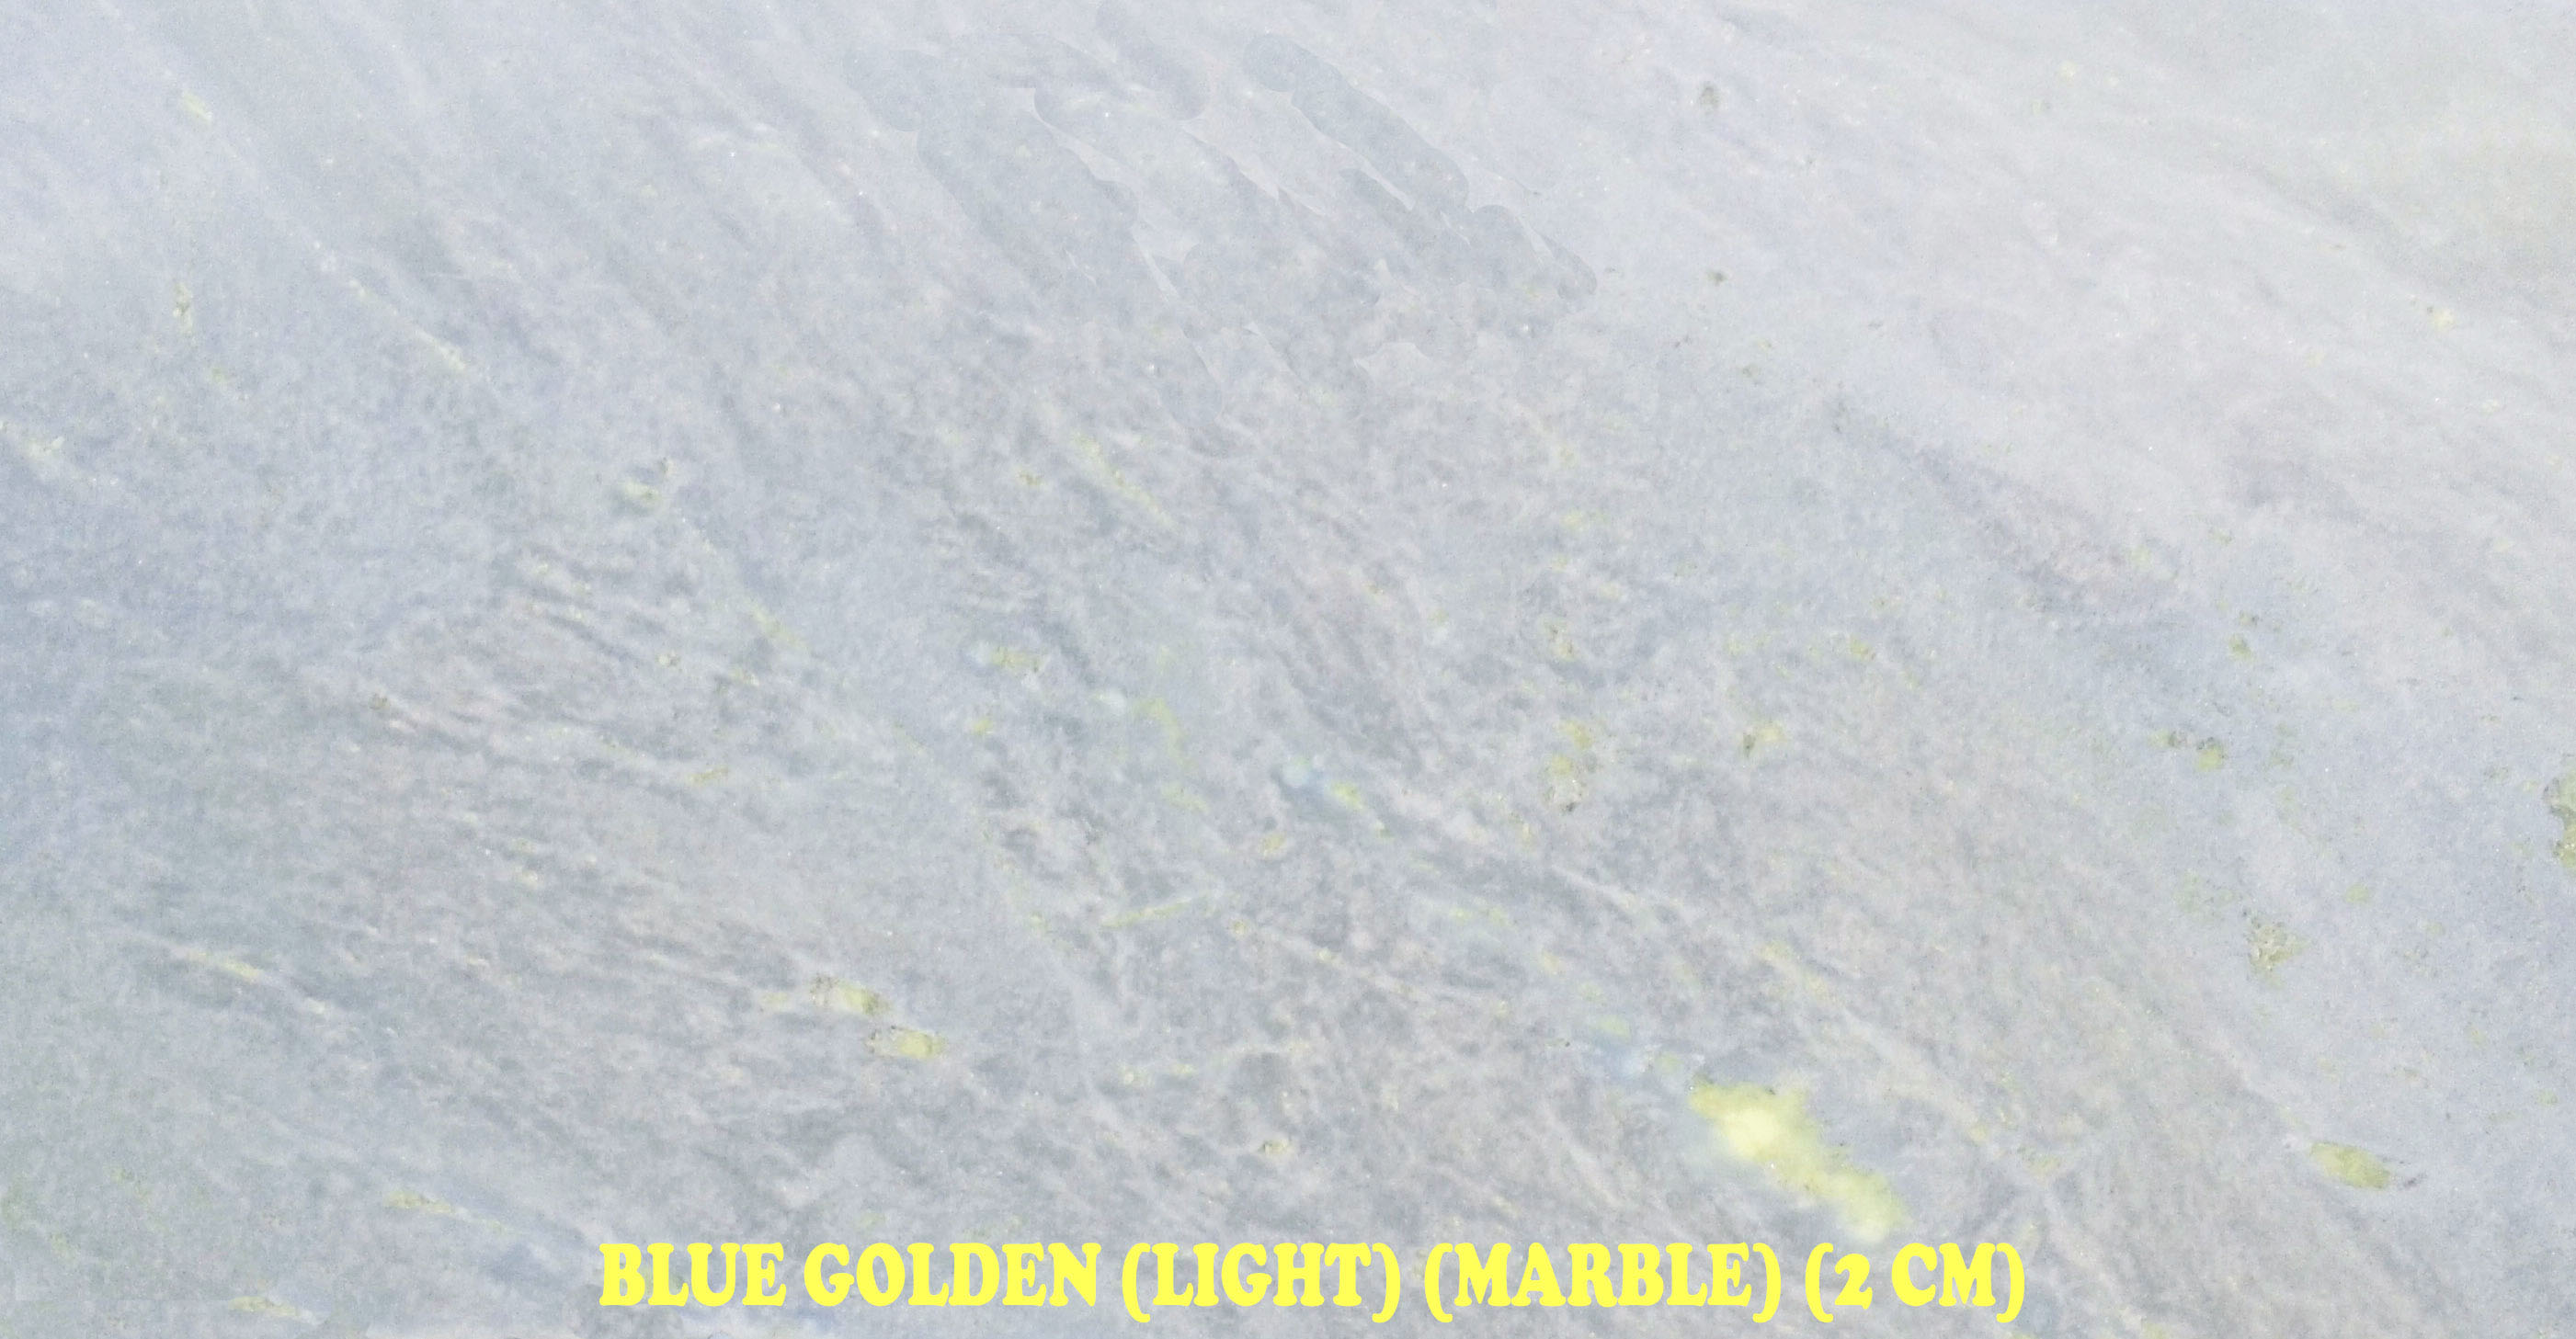 BLUE GOLDEN (LIGHT) (MARBLE)